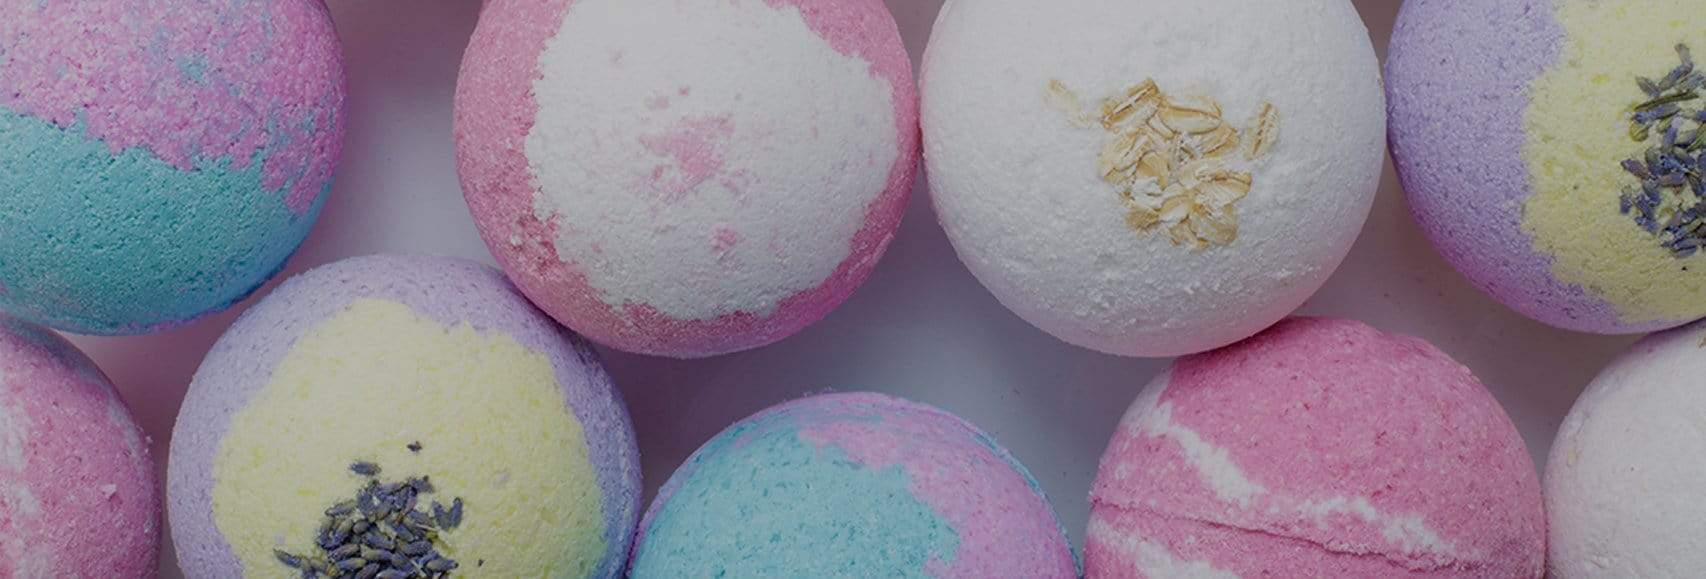 Ring Bath Bombs